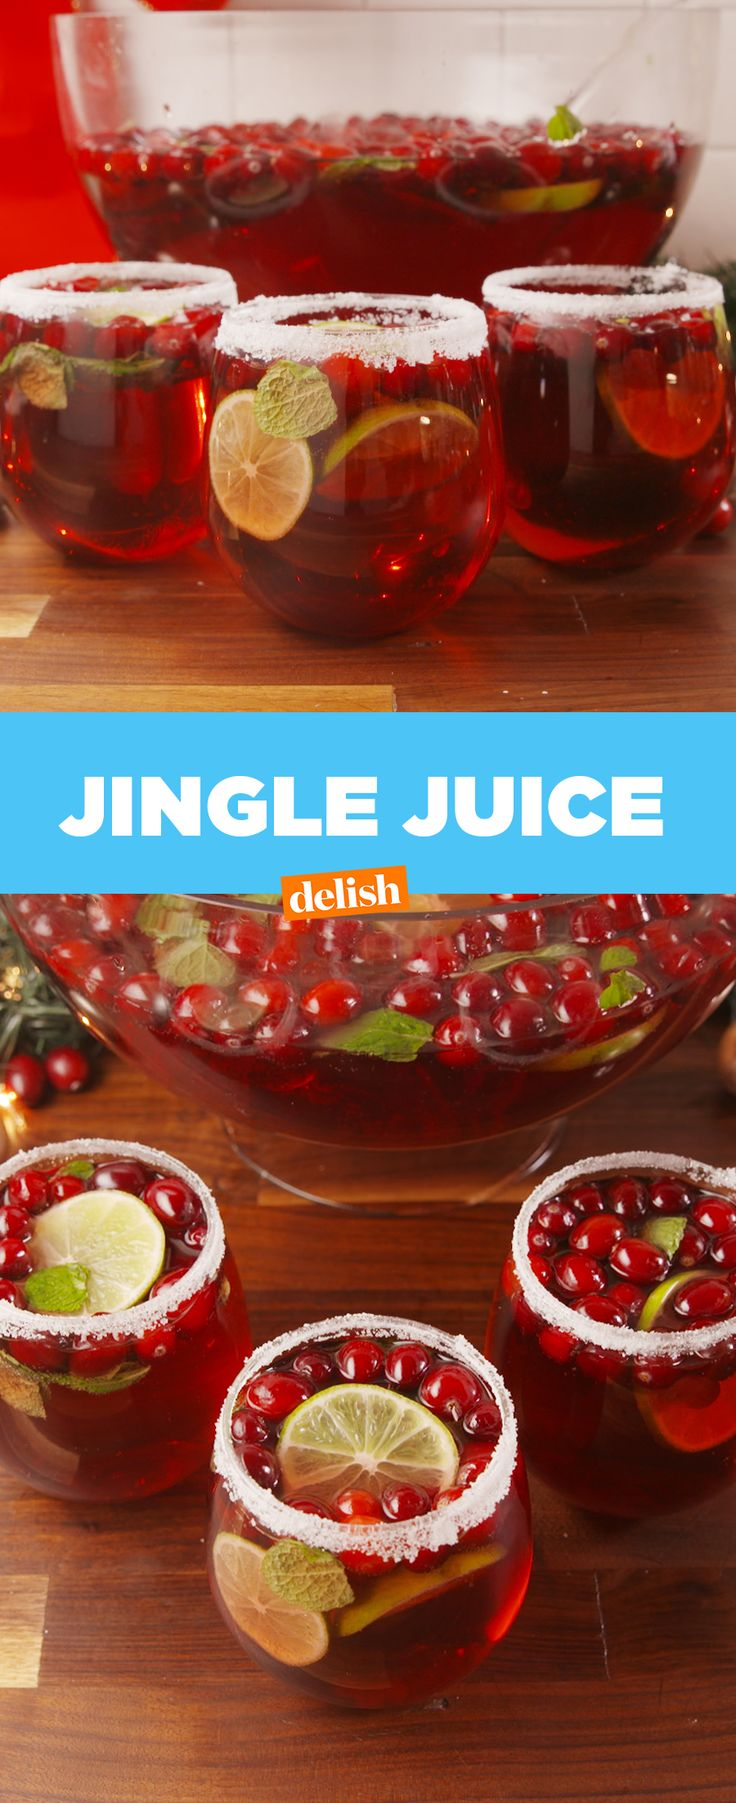 Jingle Juice will sleigh any holiday party. Get the recipe at Delish.com. #cranberry #alcohol #booze #boozy #cocktail #drinks #cranberryjuice #lime #drinkingideas #alcoholicbeverages #delish